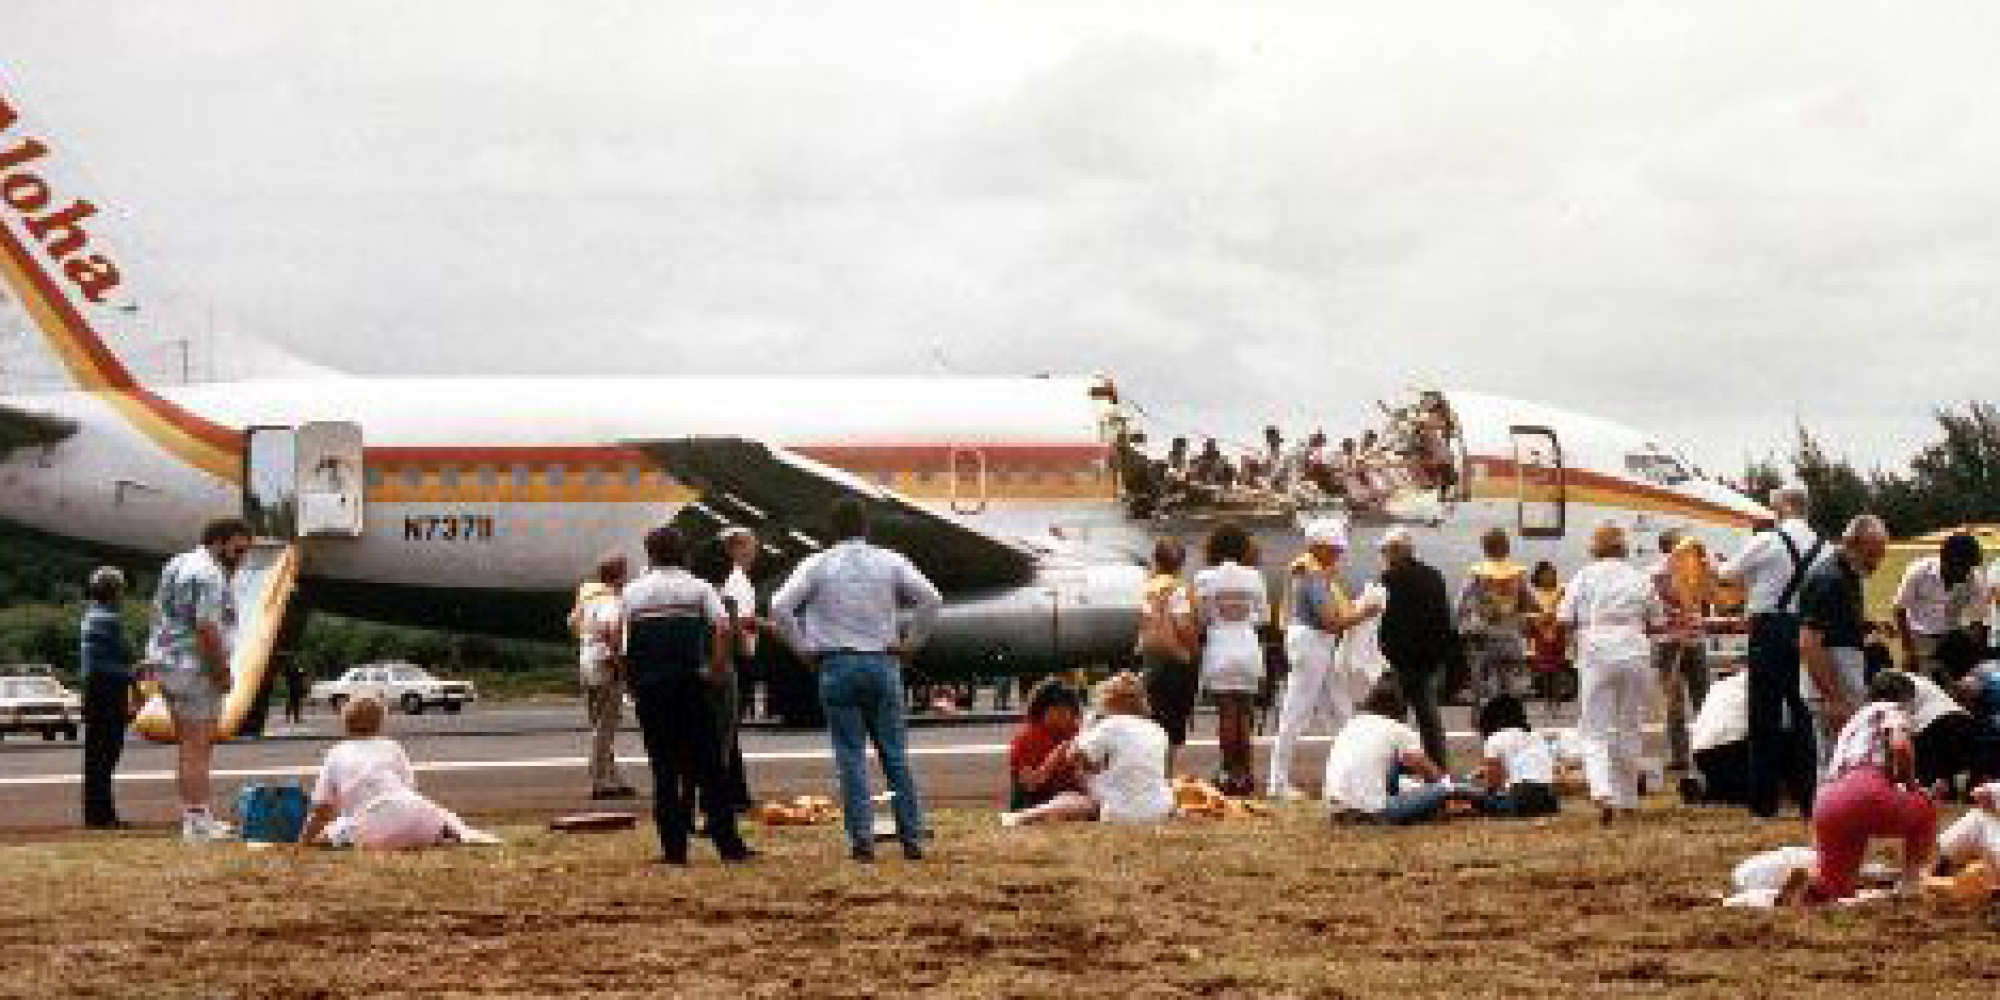 aloha flight 243 Aloha airlines flight 243 aloha airlines flight 243 (aq 243, aah 243) was a scheduled aloha airlines flight between hilo and honolulu in hawaii on april 28, 1988, a boeing 737-297 serving the flight suffered extensive damage after an explosive decompression in flight, but was able to land safely at kahului airport on maui.